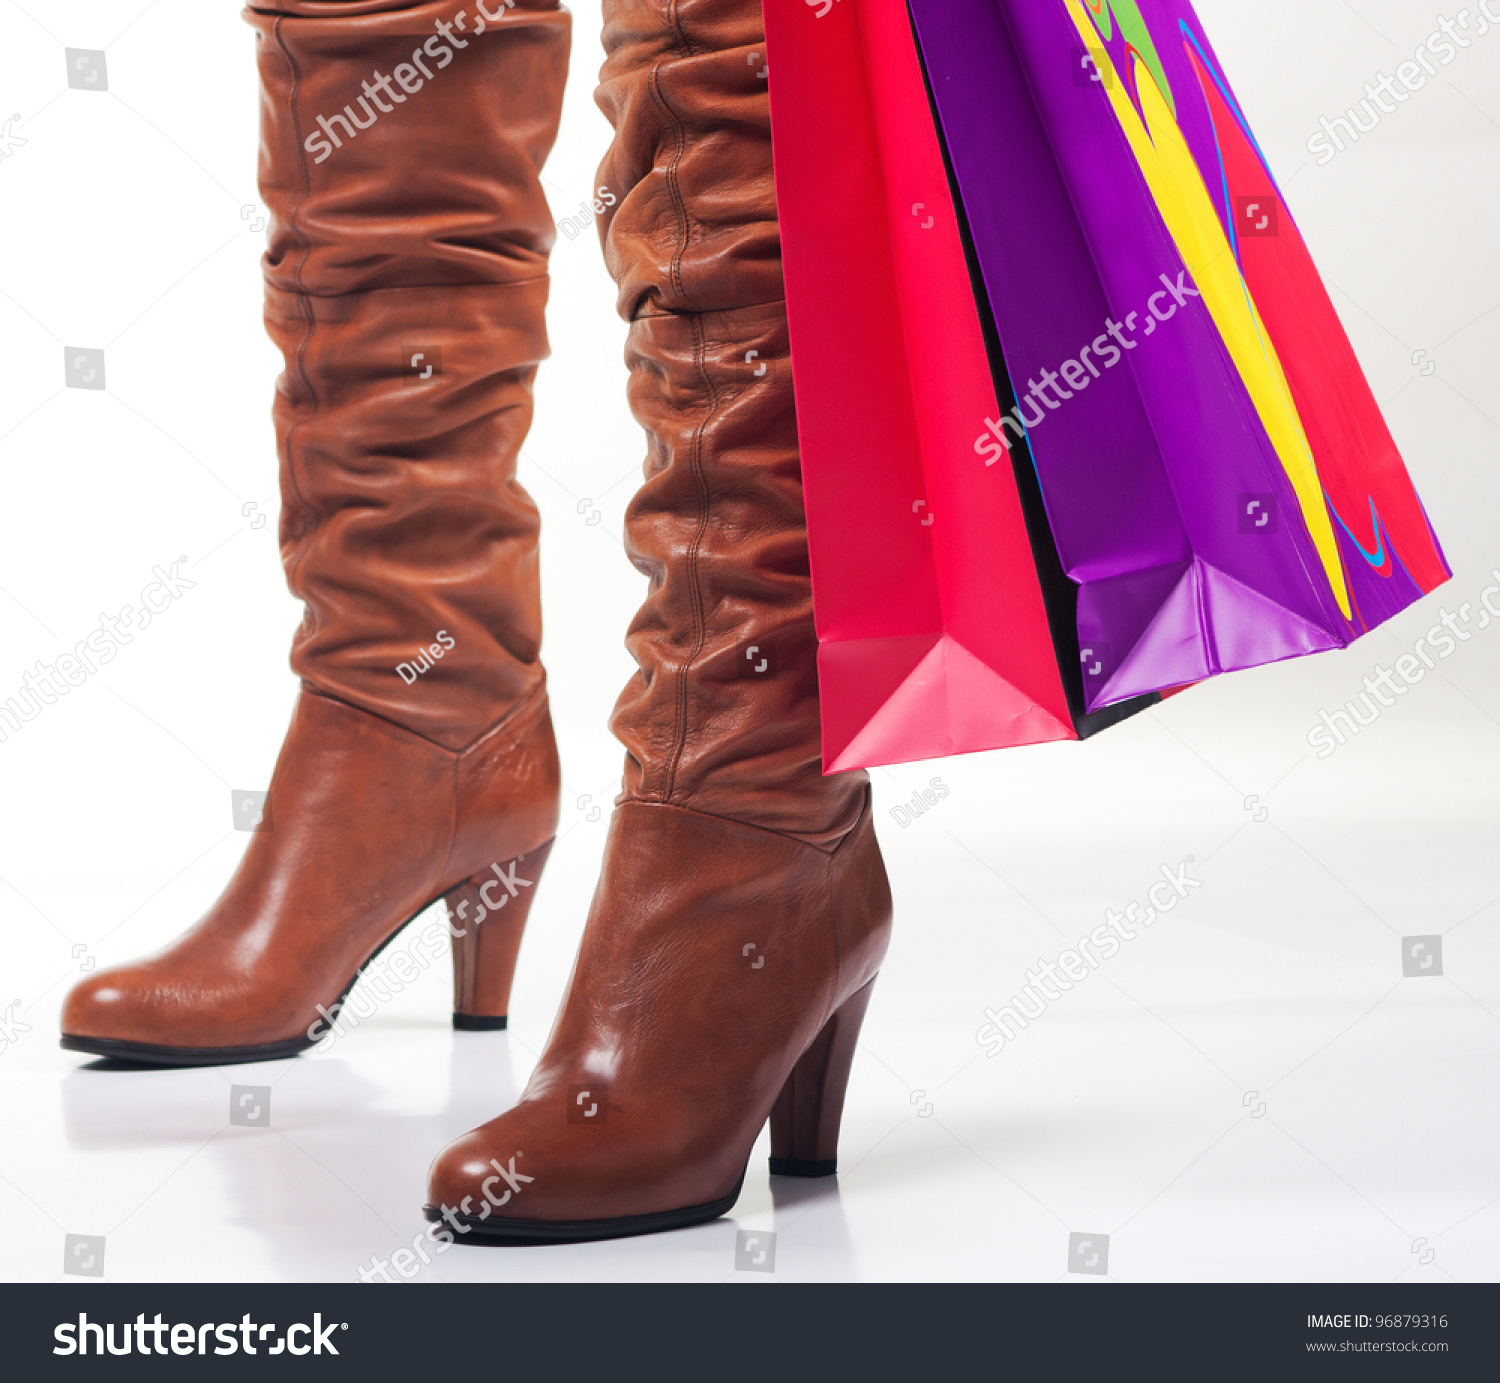 Woman Boots Shopping Bag Stock Photo 96879316 - Shutterstock